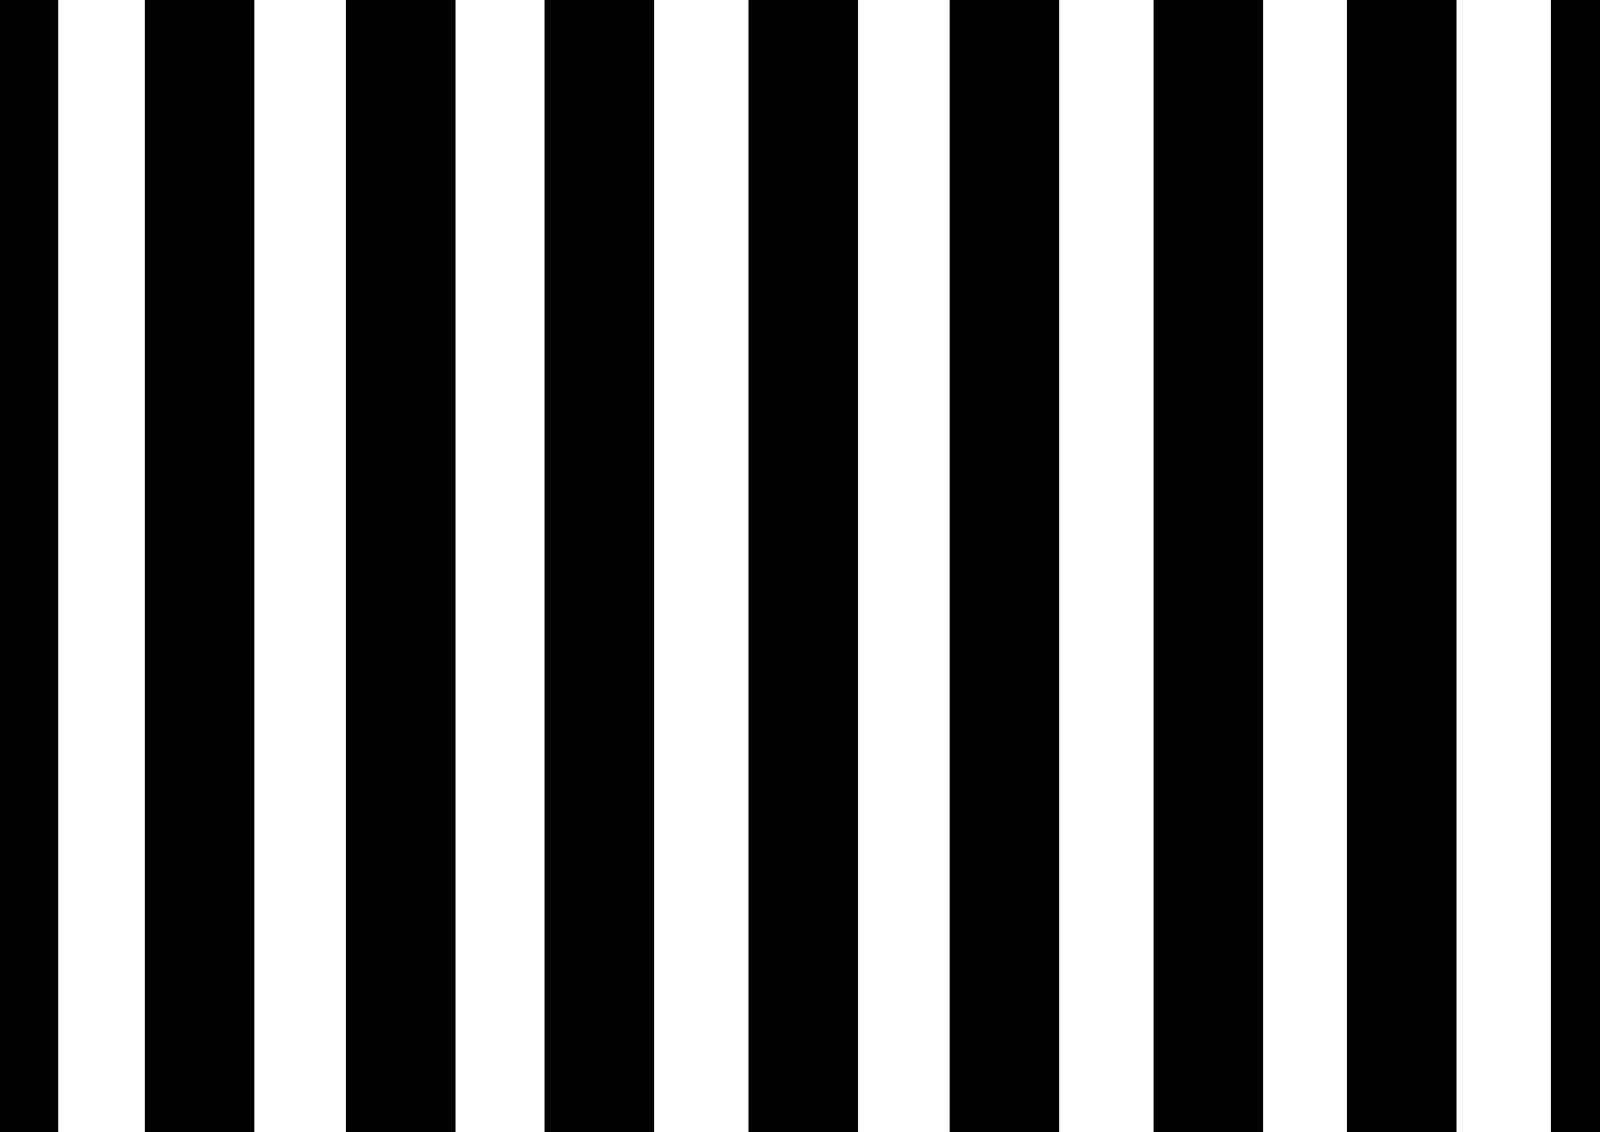 Black And White Stripe Wallpaper Removable Wallpaper Etsy Stripe Removable Wallpaper Striped Walls Wall Decal Stripes